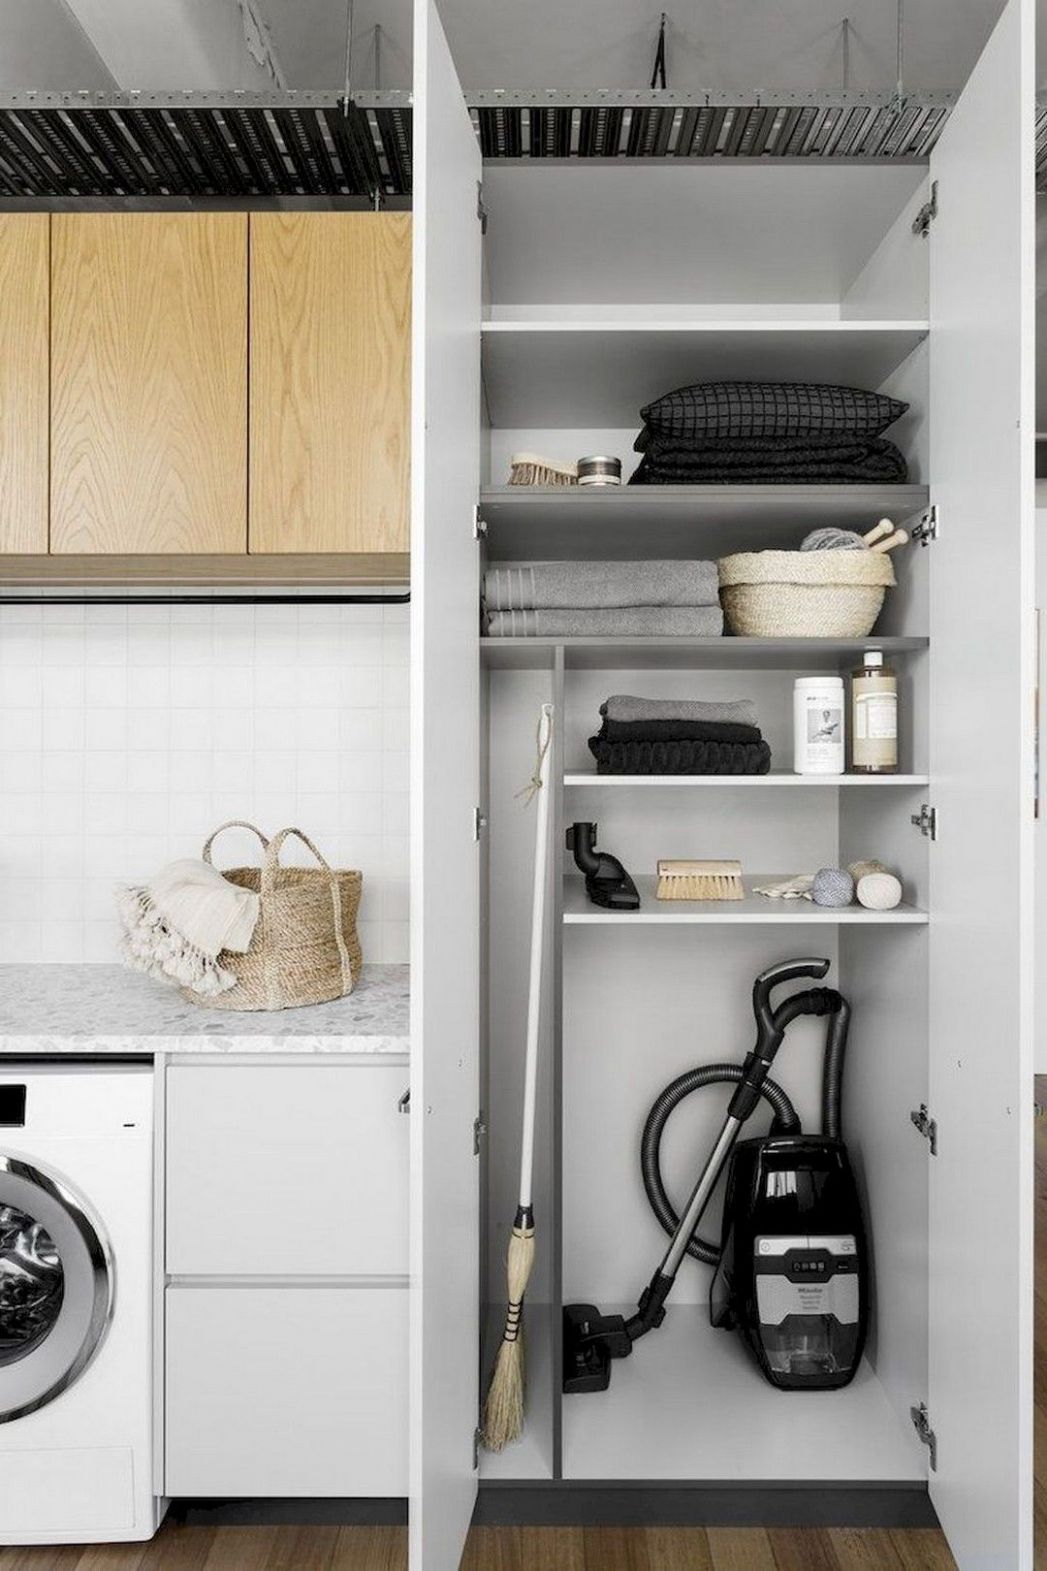 12 Awesome Laundry Room Storage and Organization Ideas (With ...